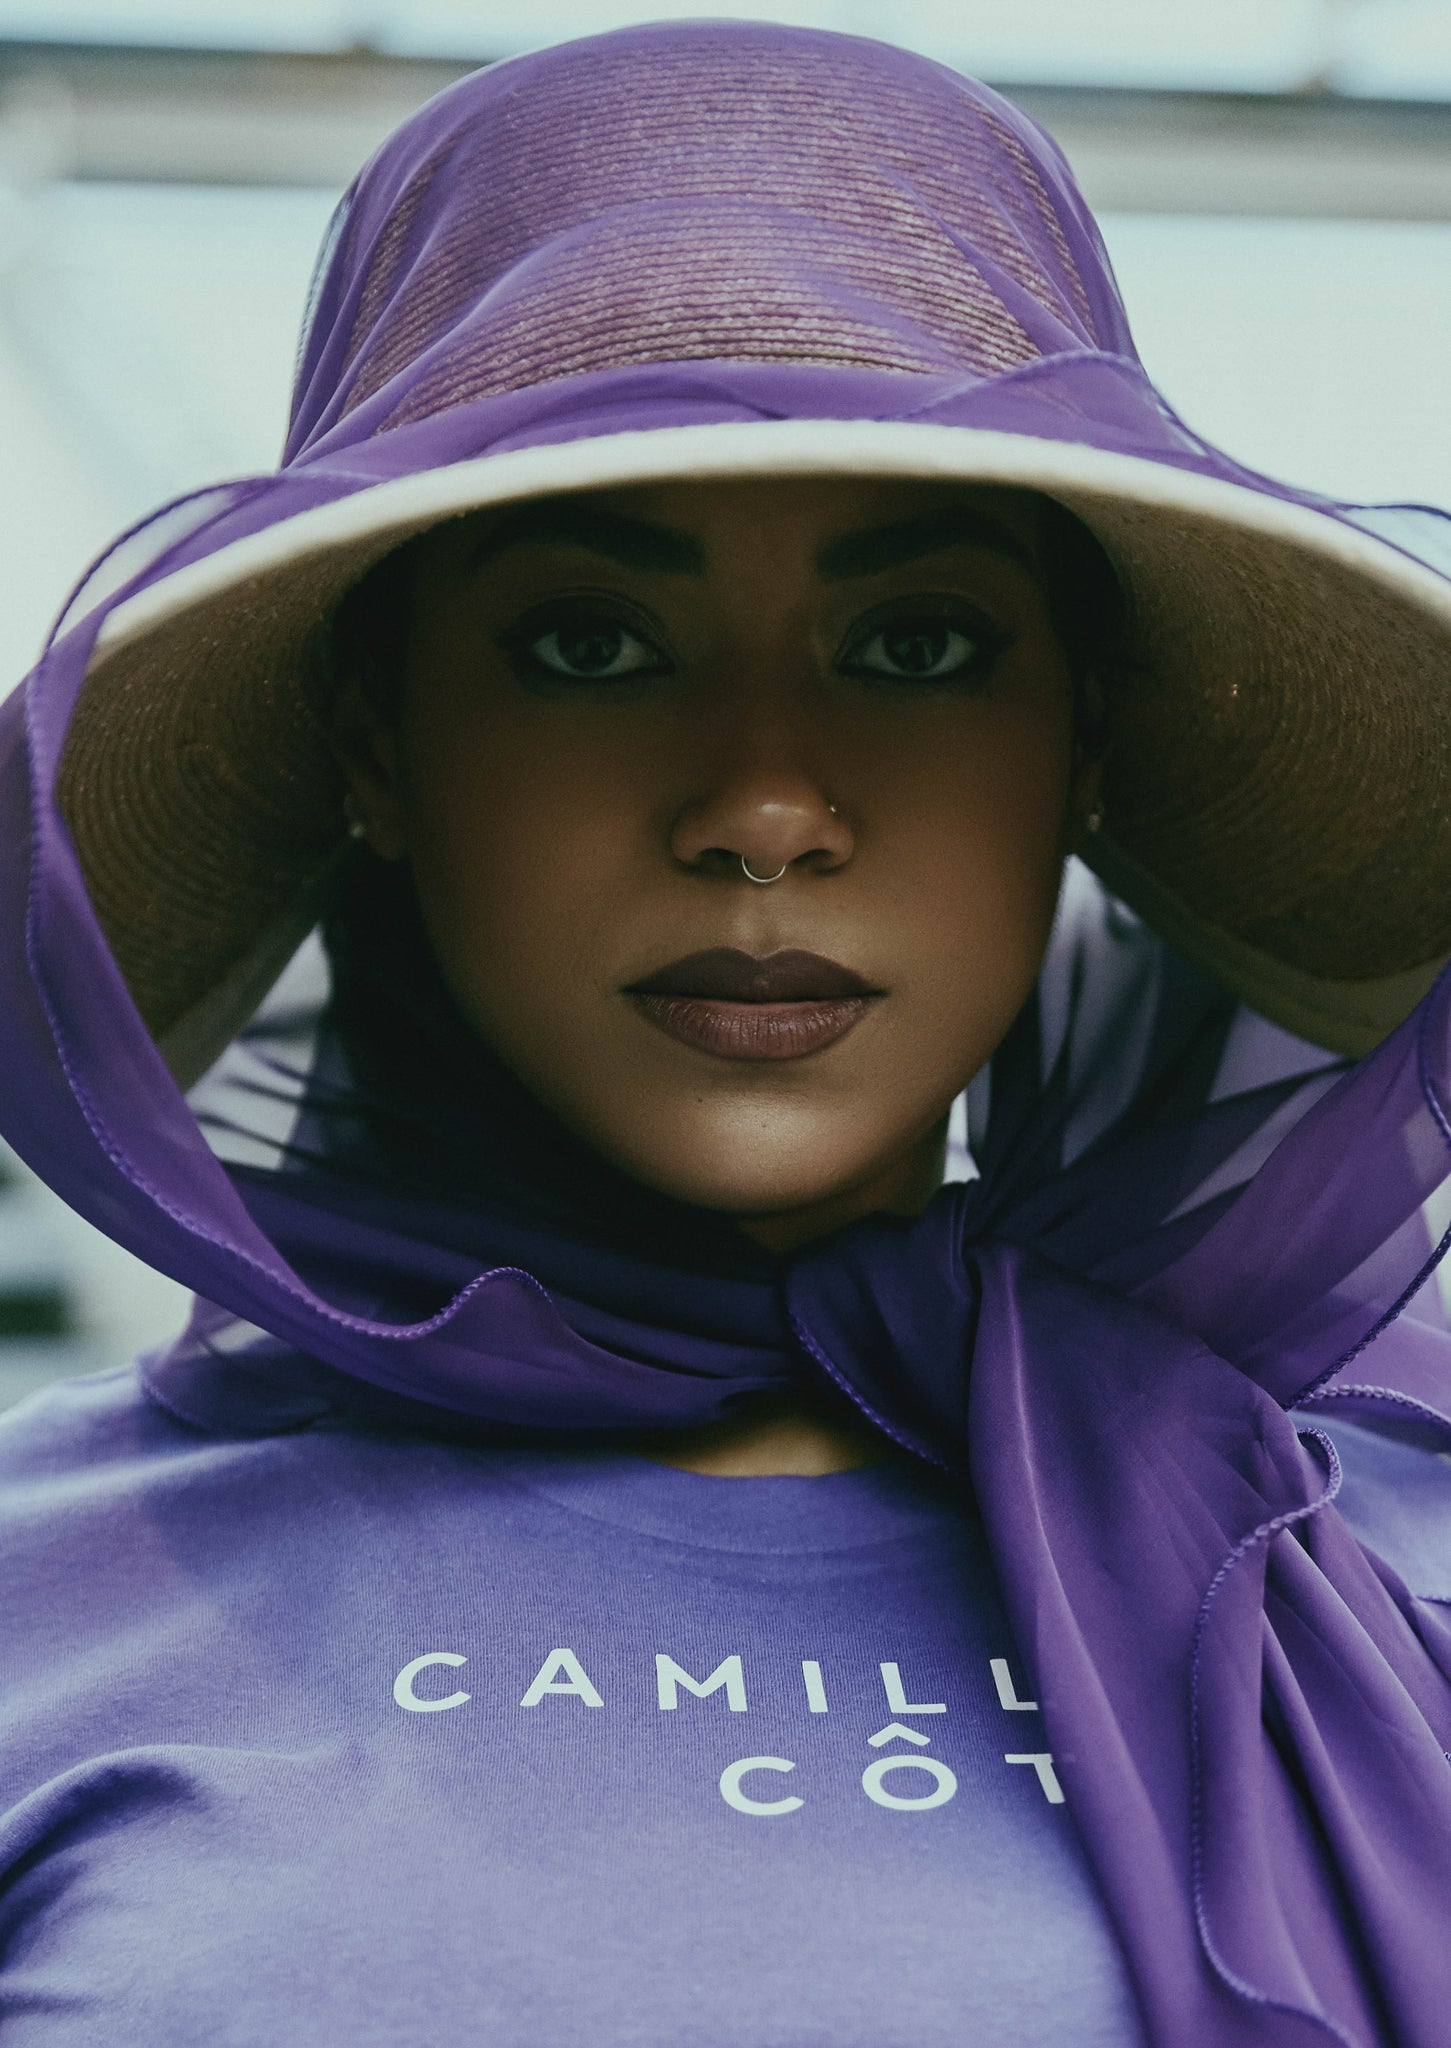 The woman wears a silk scarf with the Camille Côté T-shirt and summer hat.